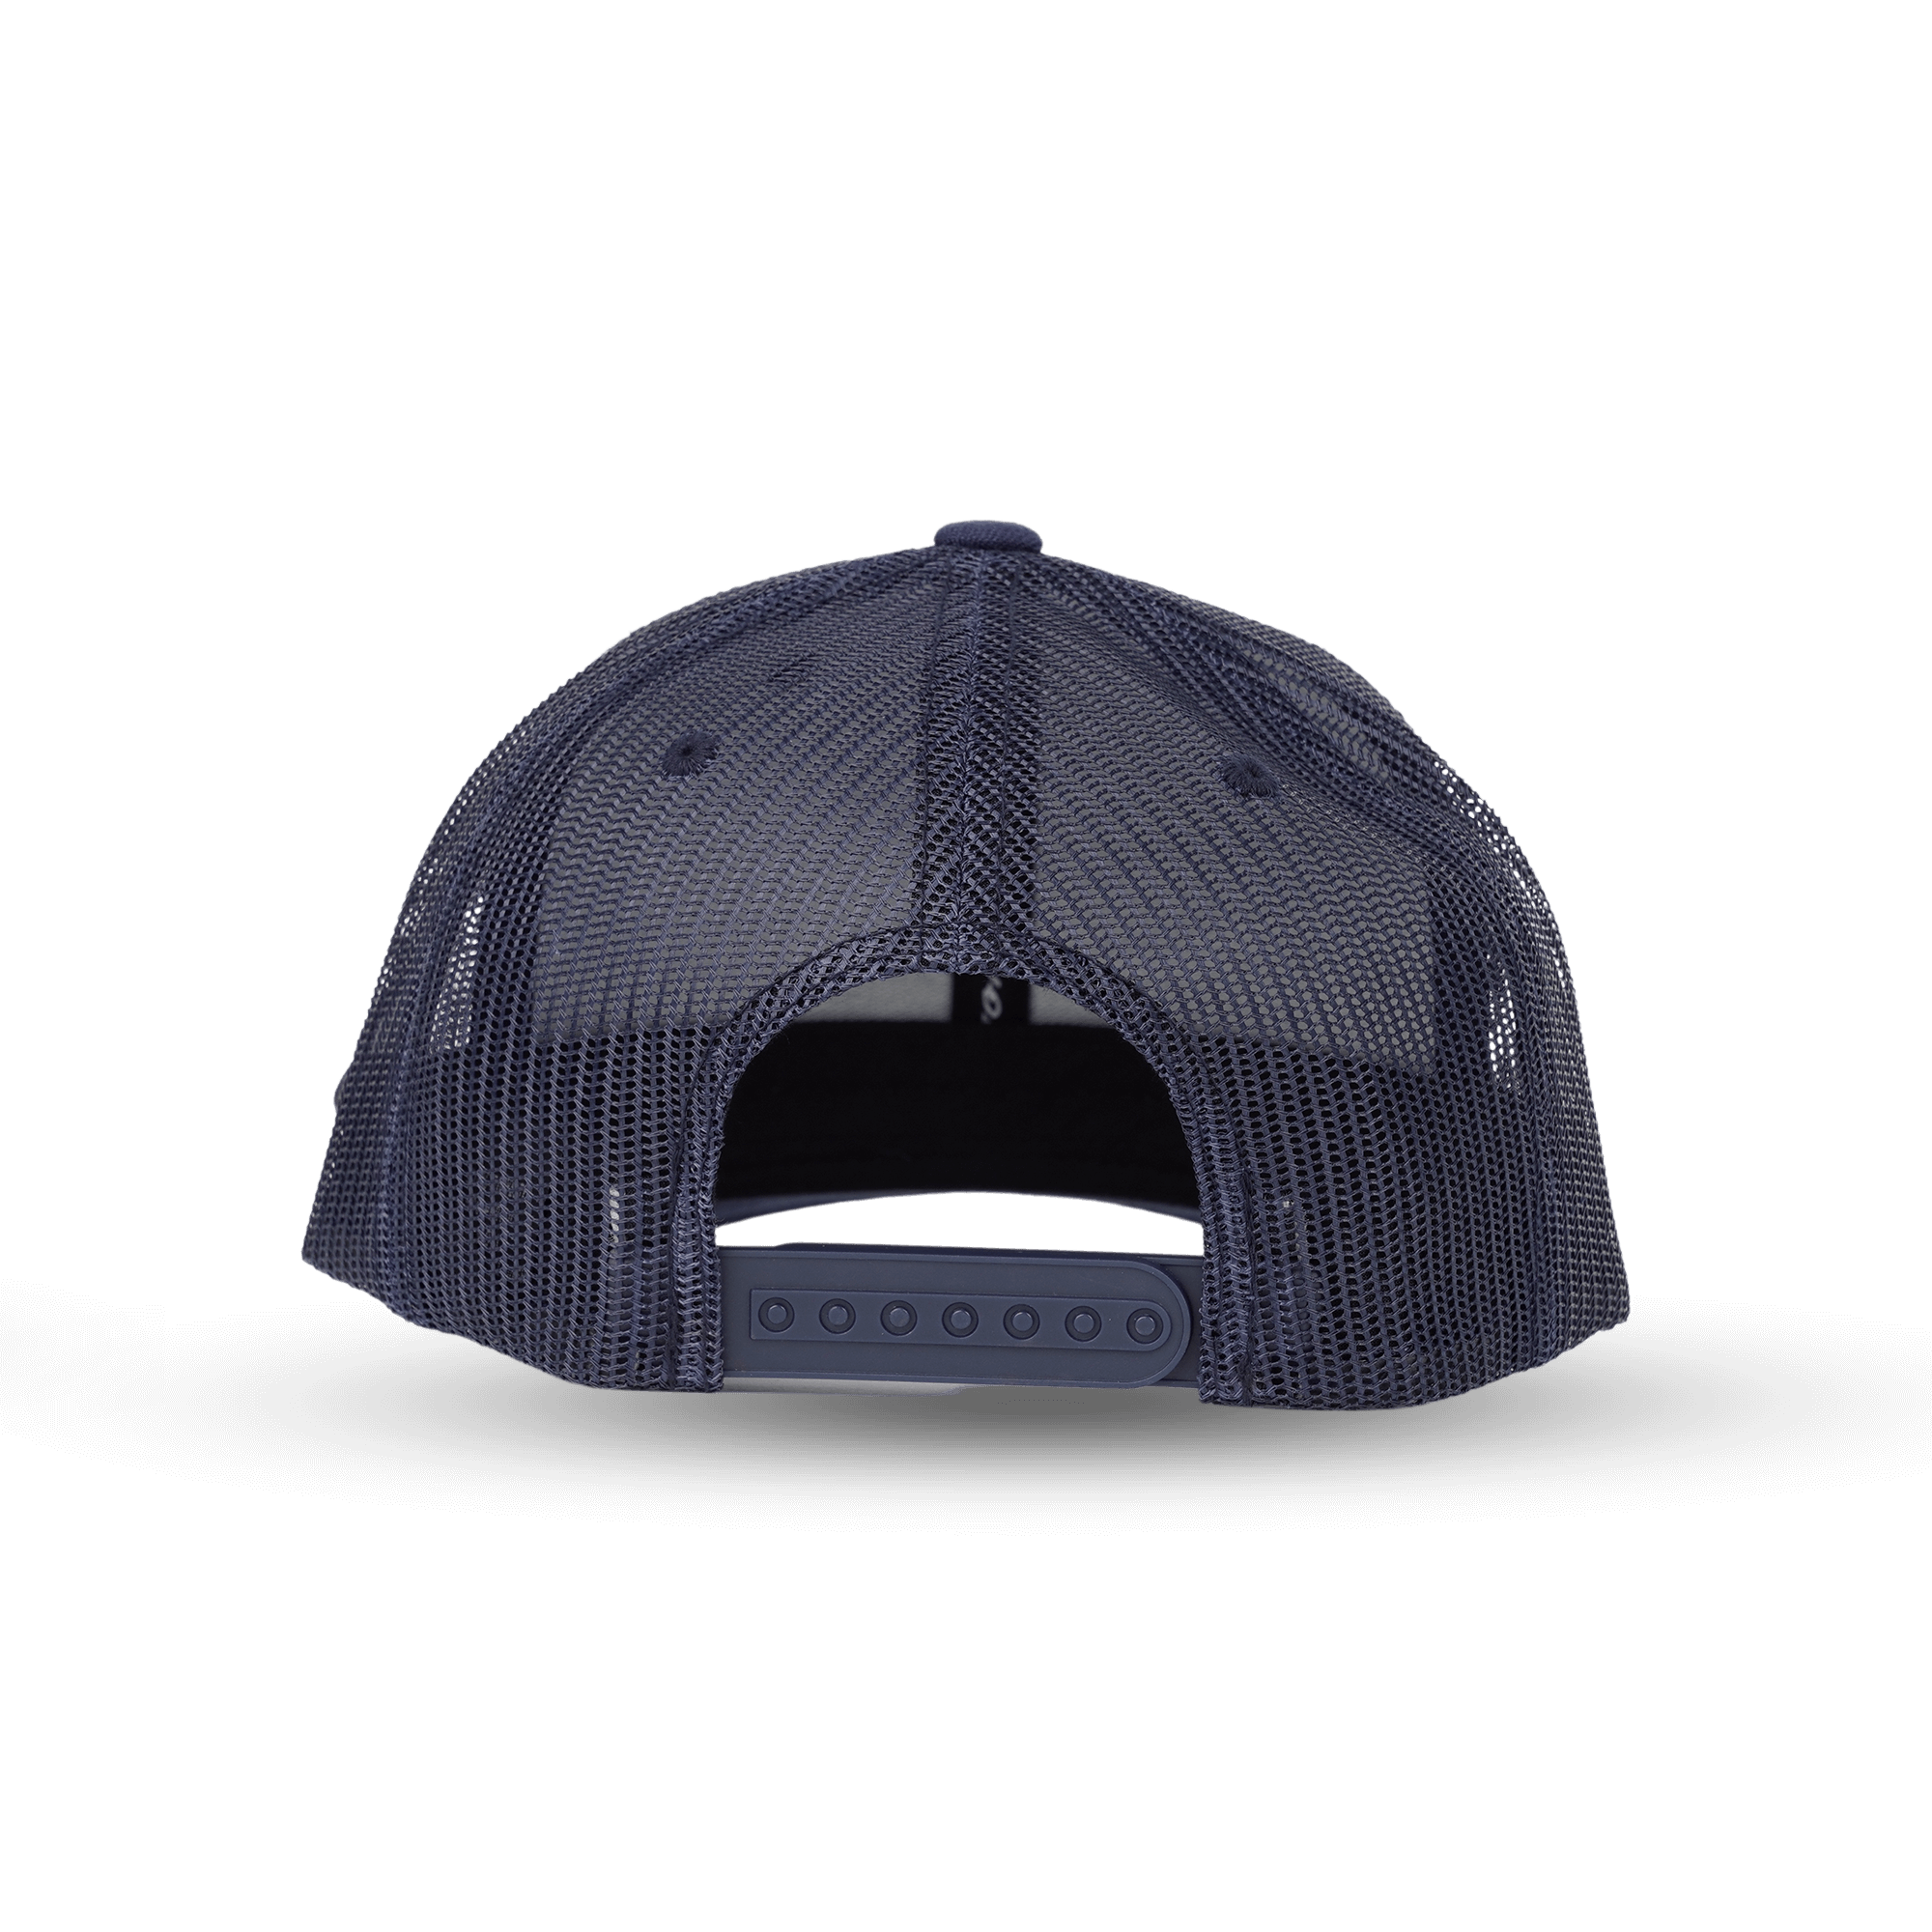 Hat_2.3_mkwmqk